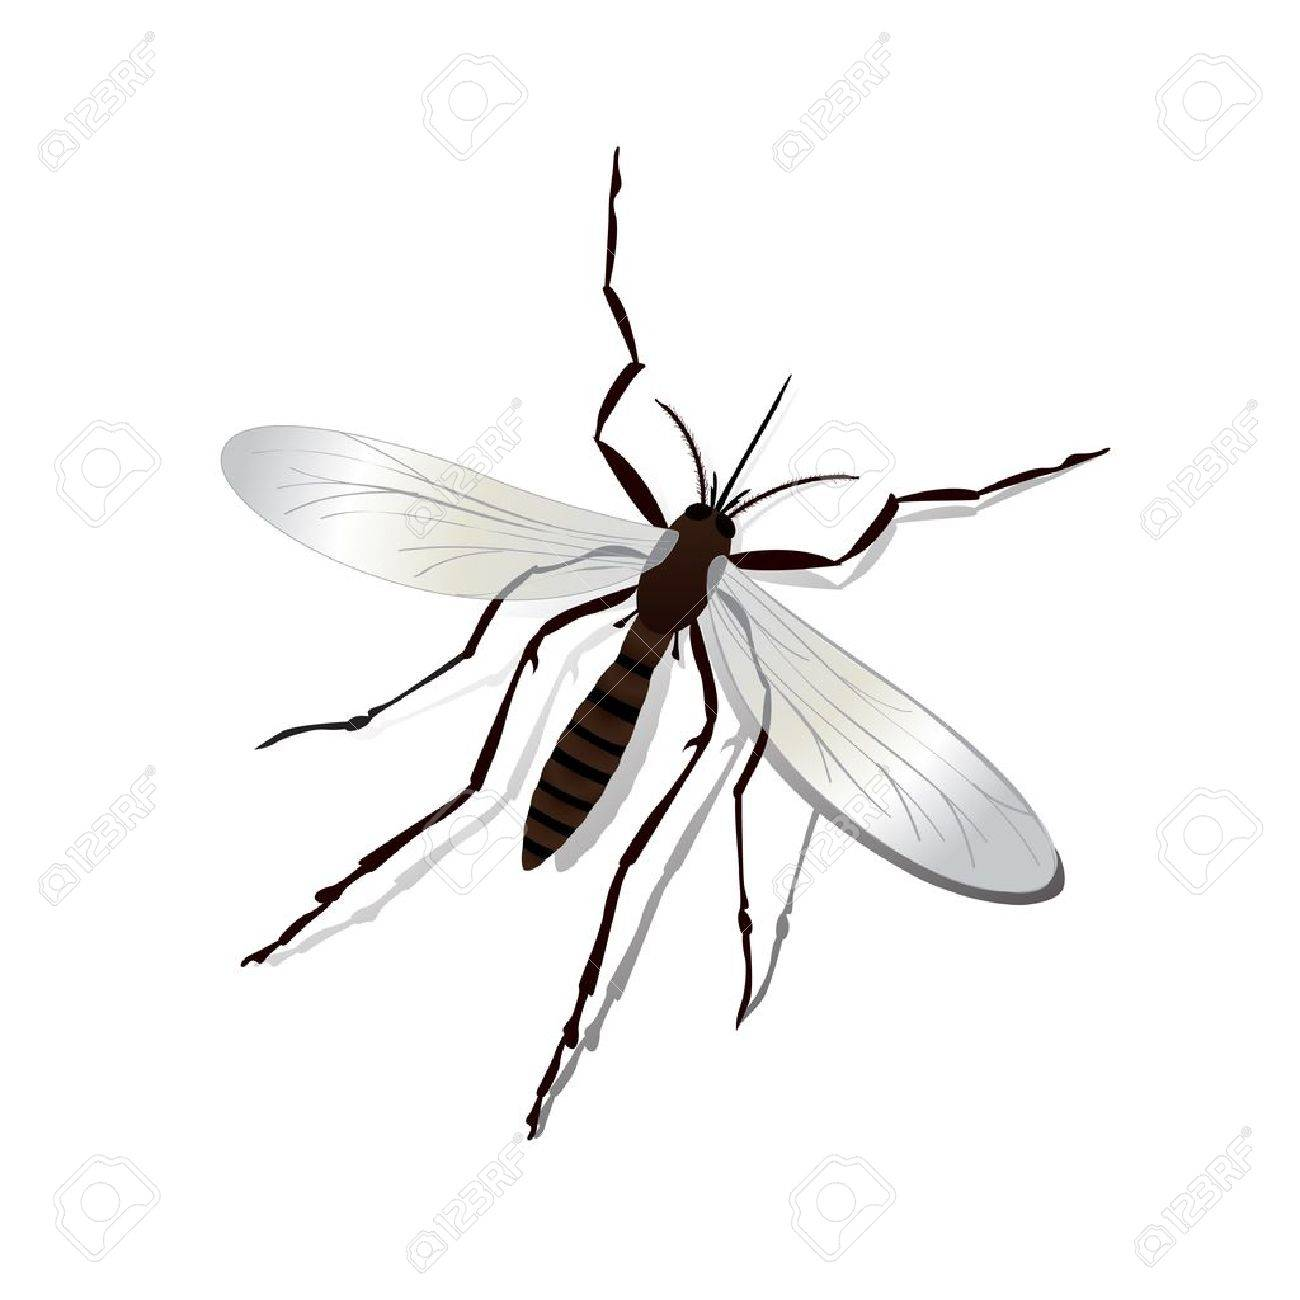 Realistic mosquito and shadow illustration, isolated and grouped objects over white Stock Vector - 15472535